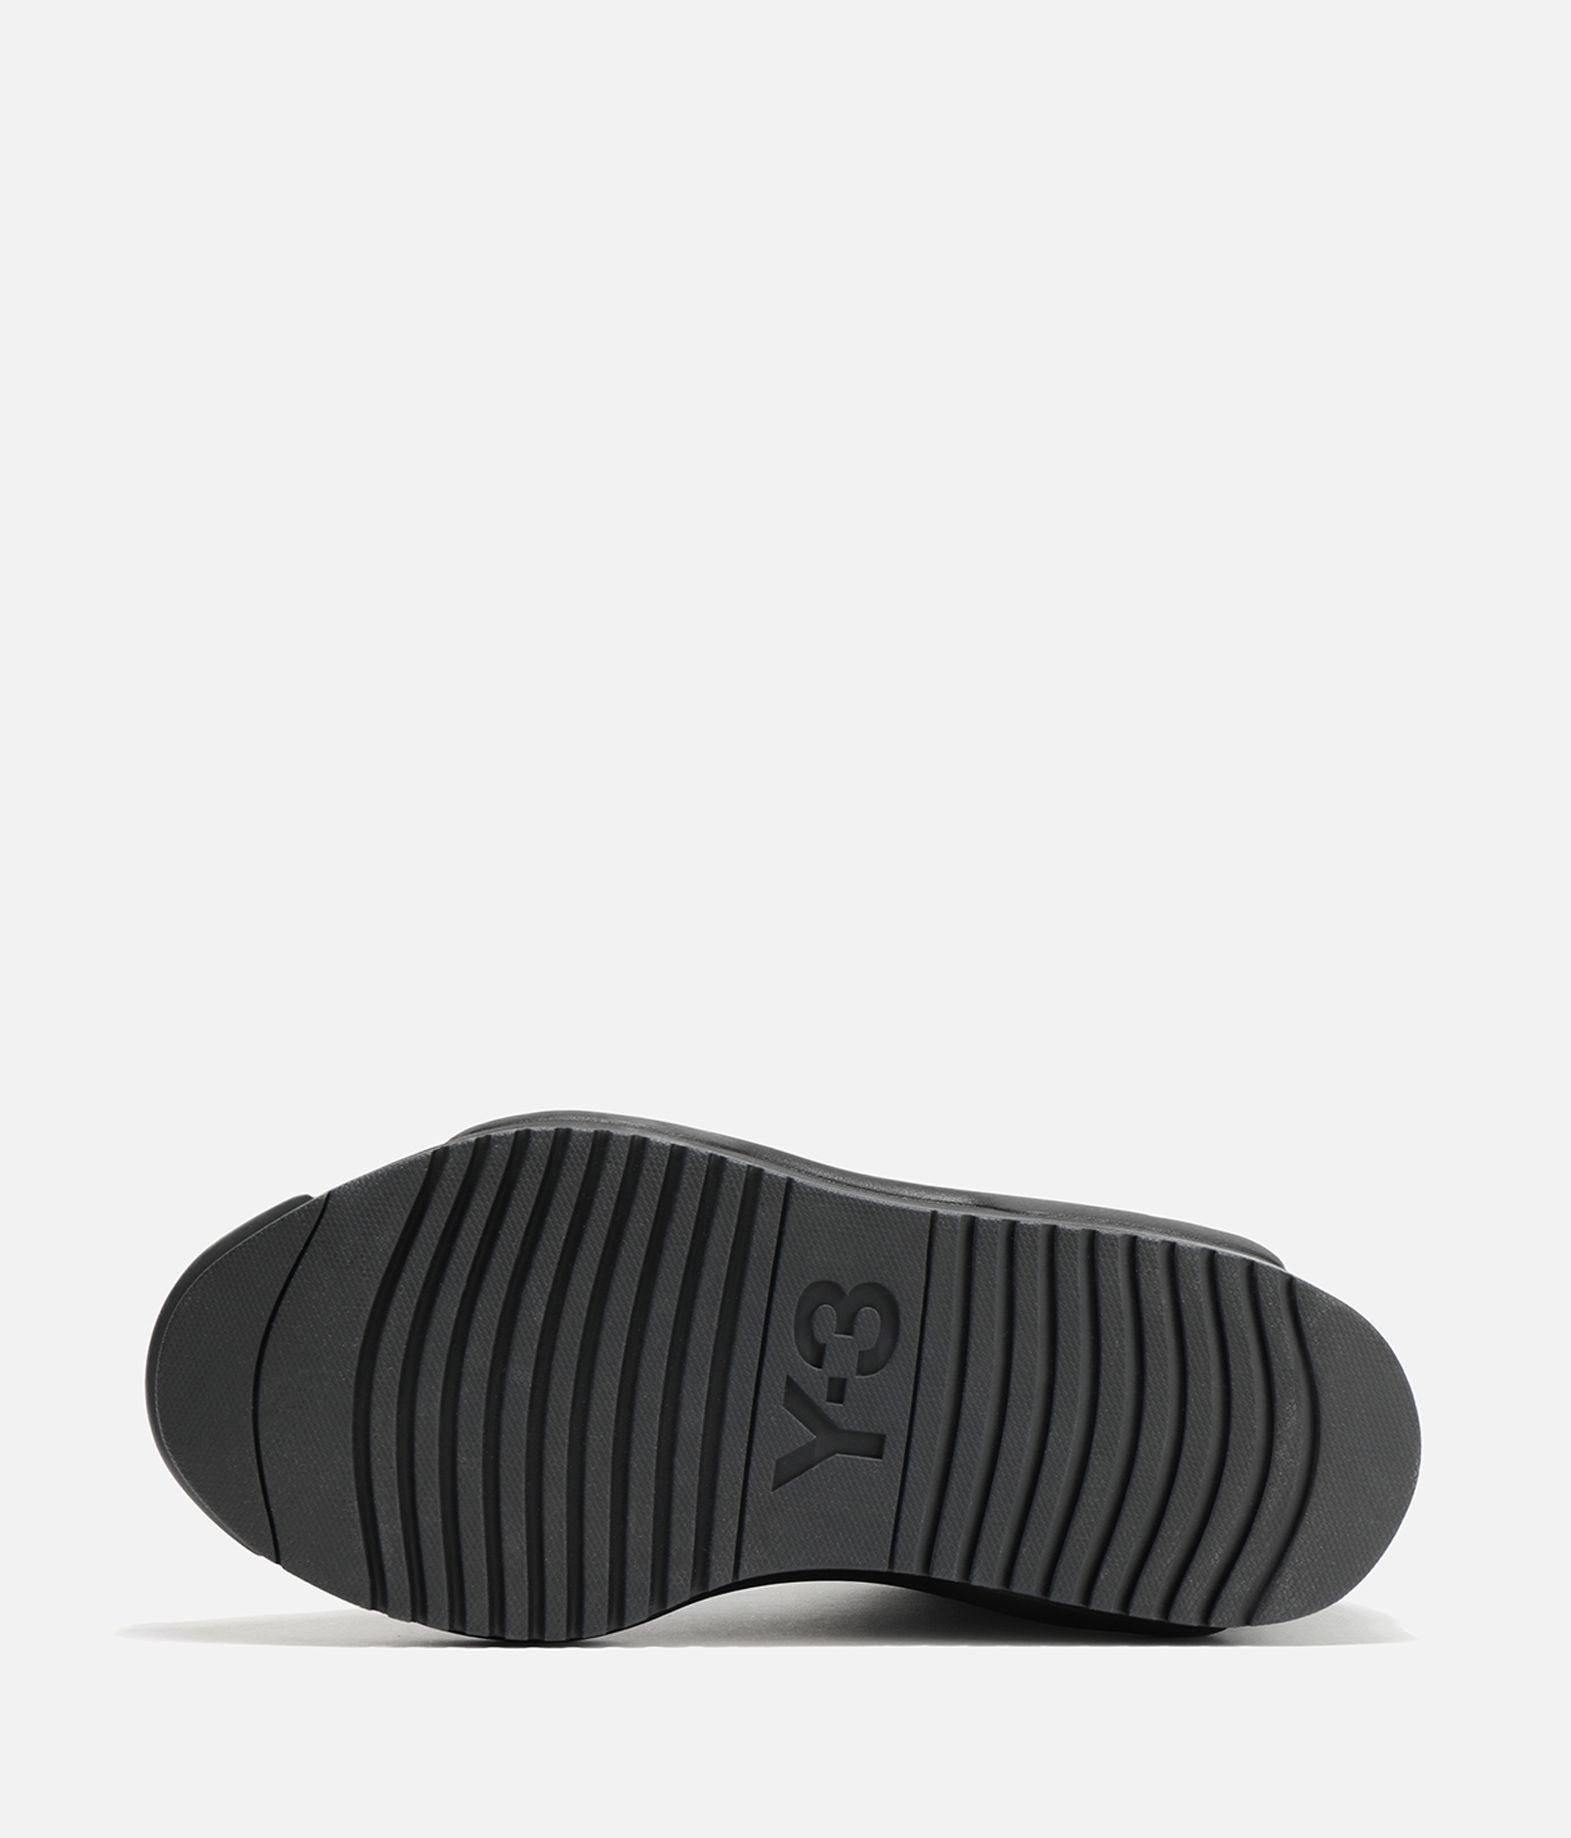 Y-3 Y-3 Hokori Sneakers Woman a